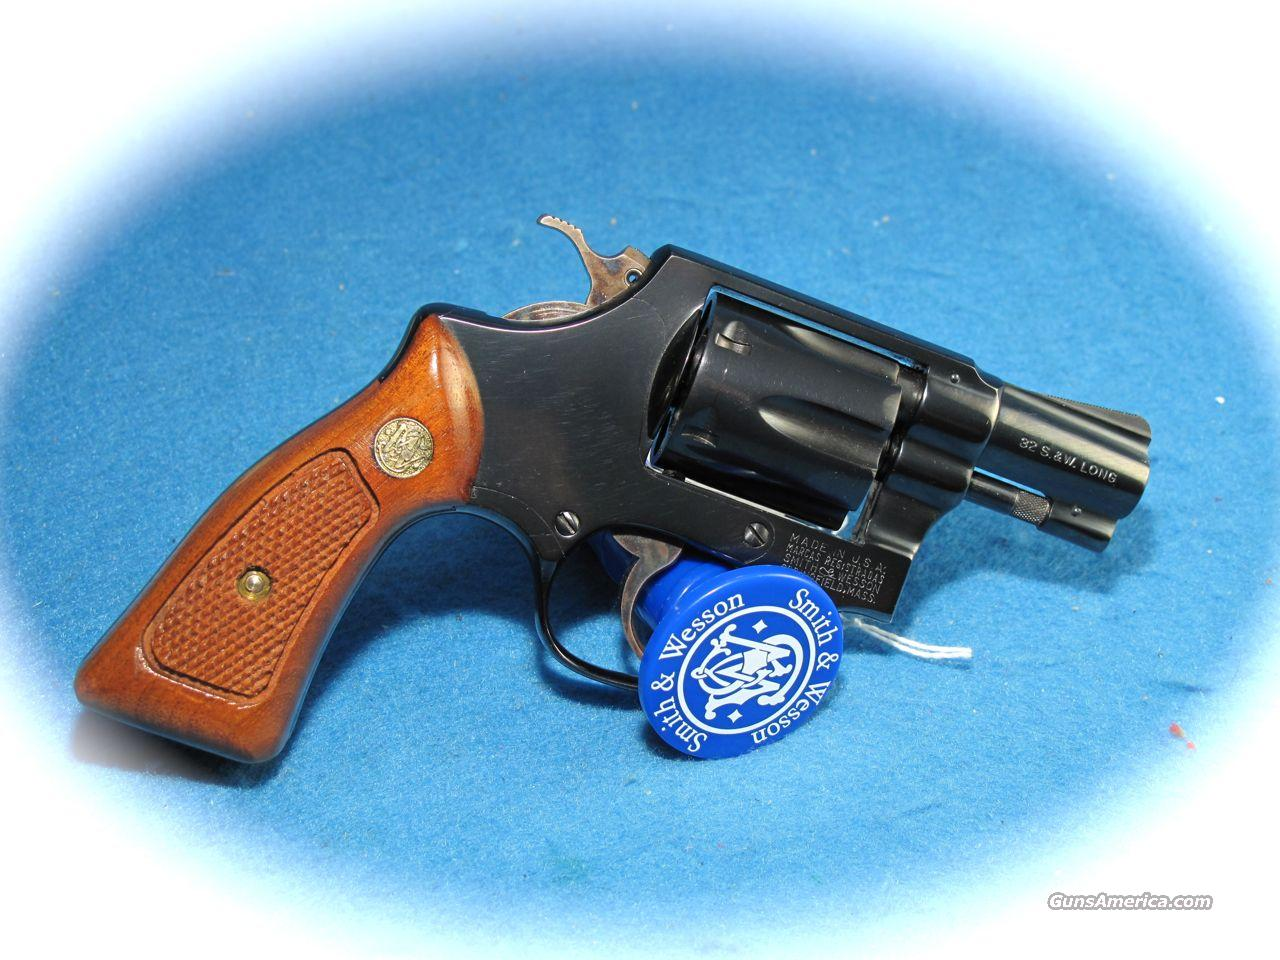 Smith & Wesson Model 31-1 2 inch 32 S&W Long **LIKE NEW**  Guns > Pistols > Smith & Wesson Revolvers > Pocket Pistols